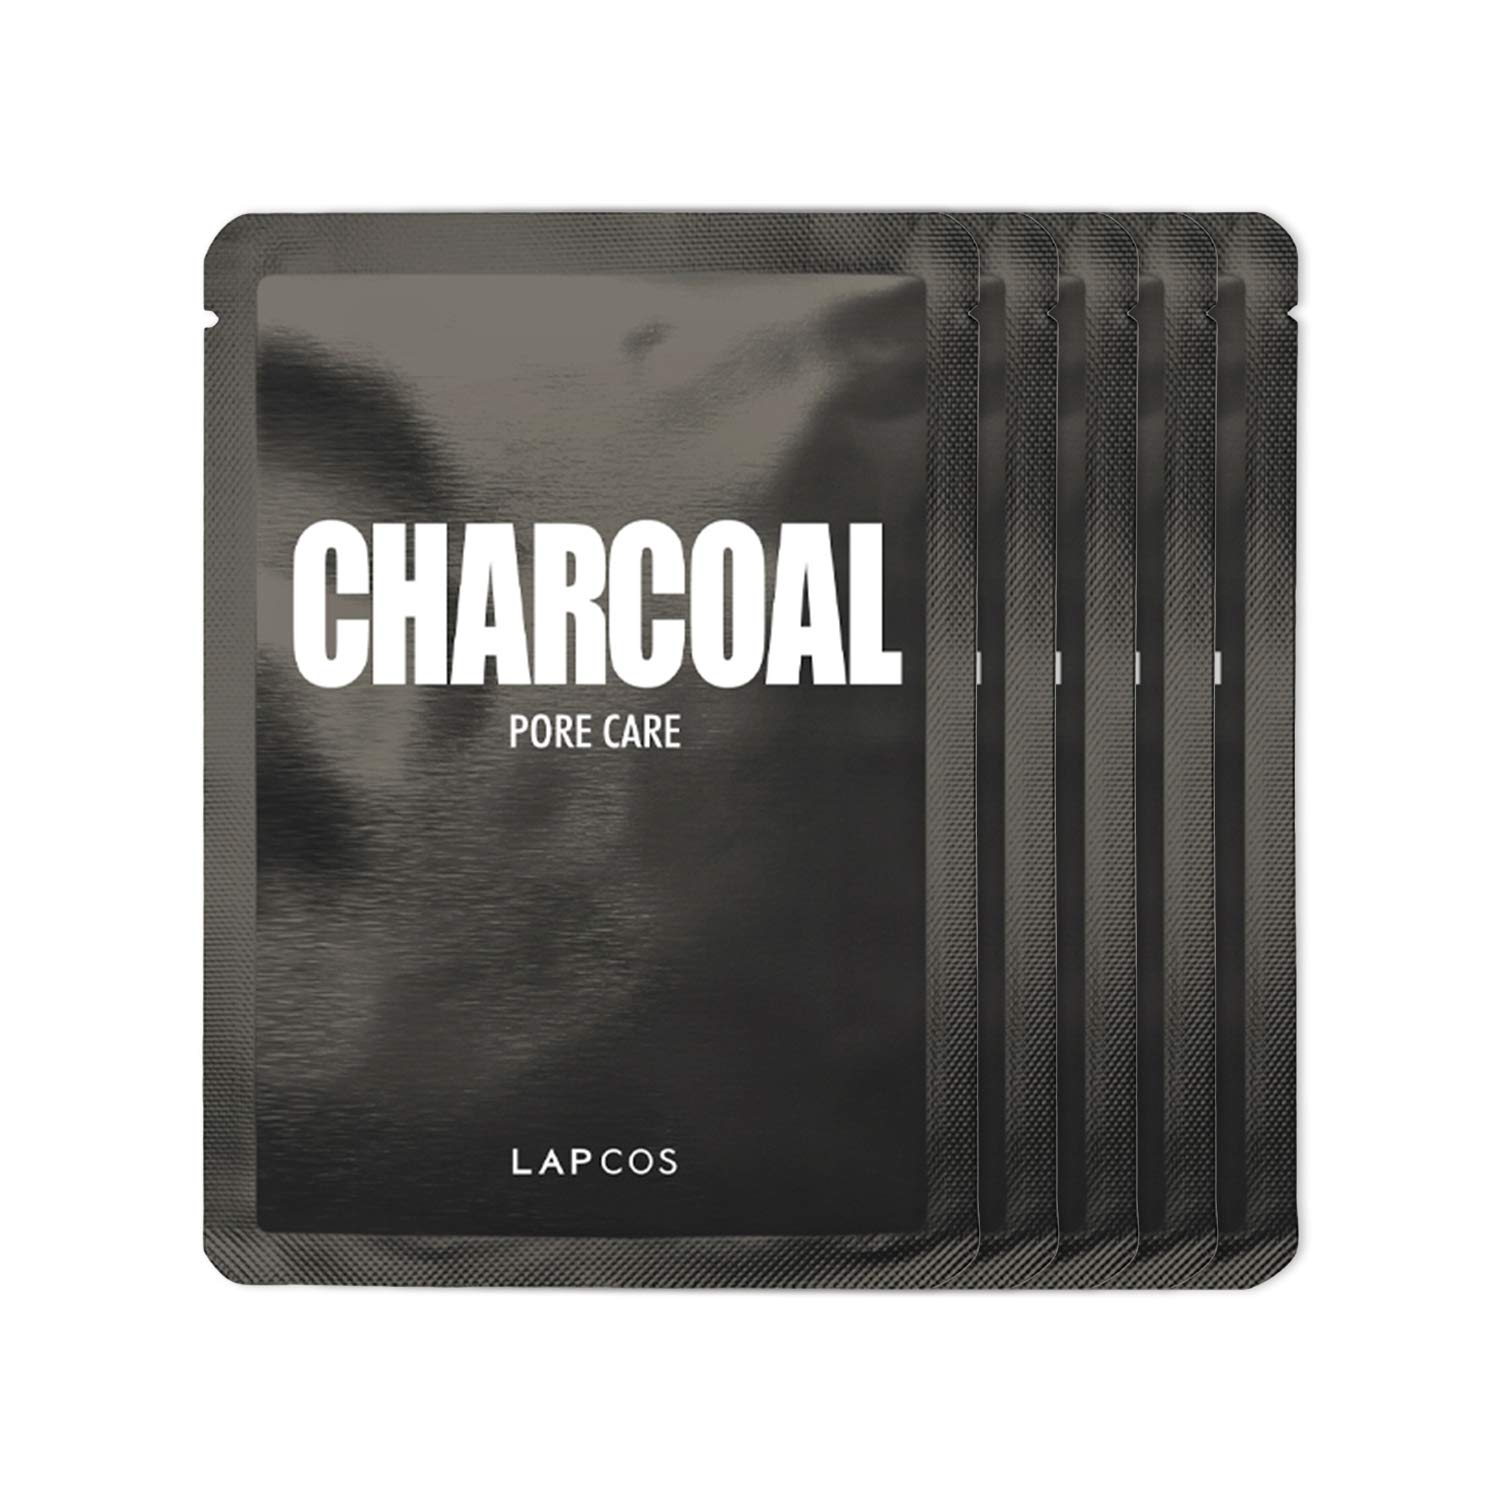 LAPCOS Charcoal Sheet Mask, Daily Face Mask with Salicylic Acid and Tea Tree Oil to Detoxify and Tighten Skin, Korean Beauty Favorite, 5-Pack